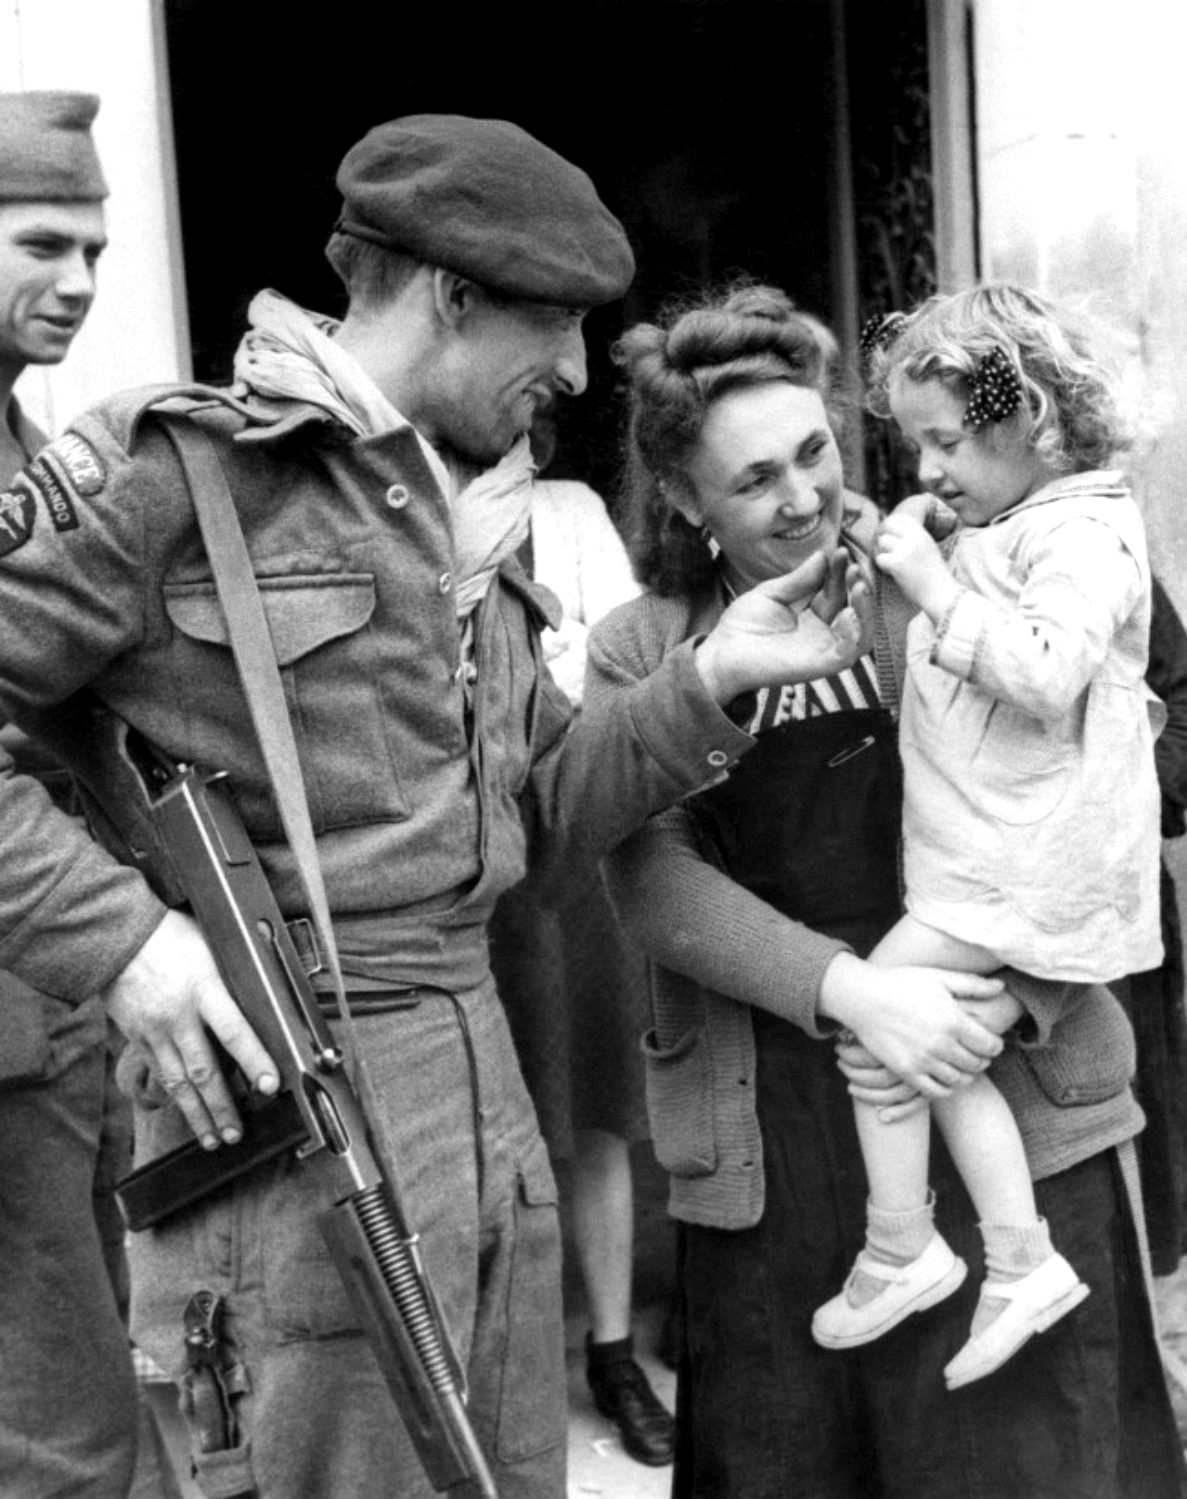 French villagers welcome French Naval Commandos who D-Day landings. thompson tommy gun Near Amfreville, Calvados, Lower Normandy, France. 17 June 1944.